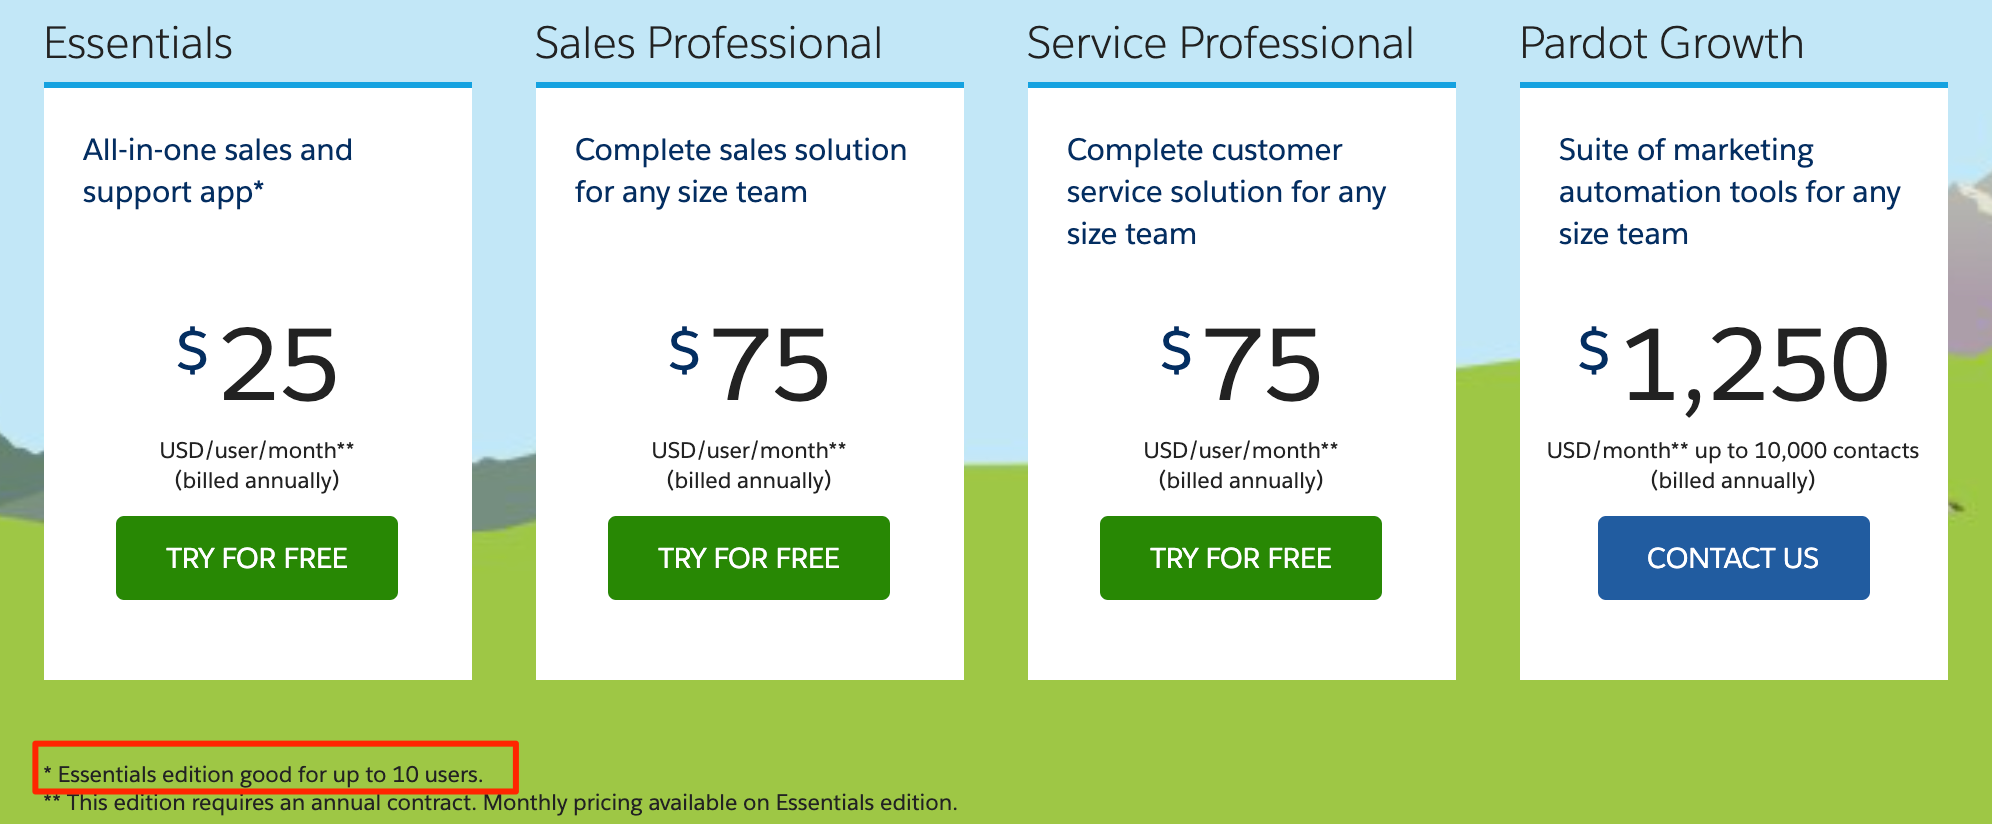 salesforce per user pricing